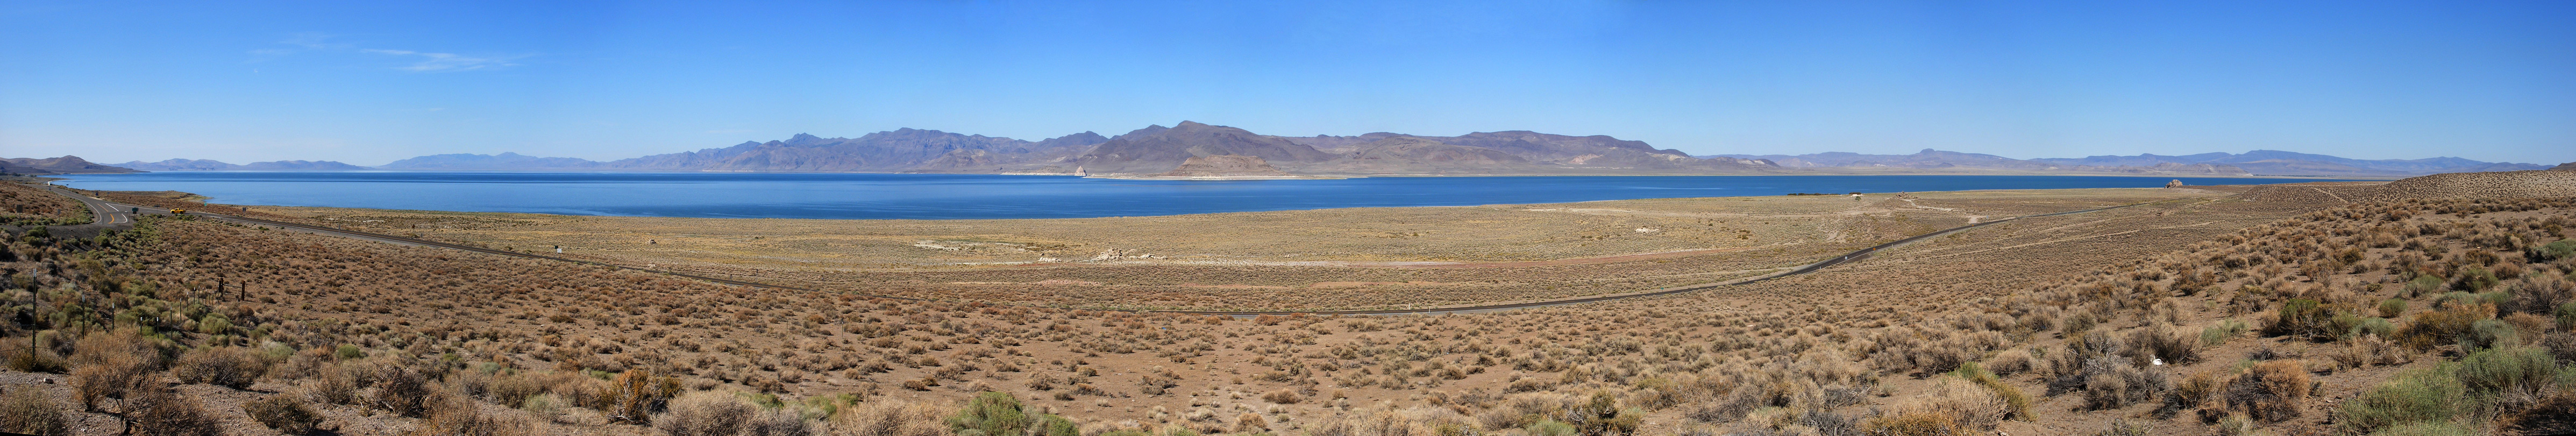 Panorama of Pyramid Lake